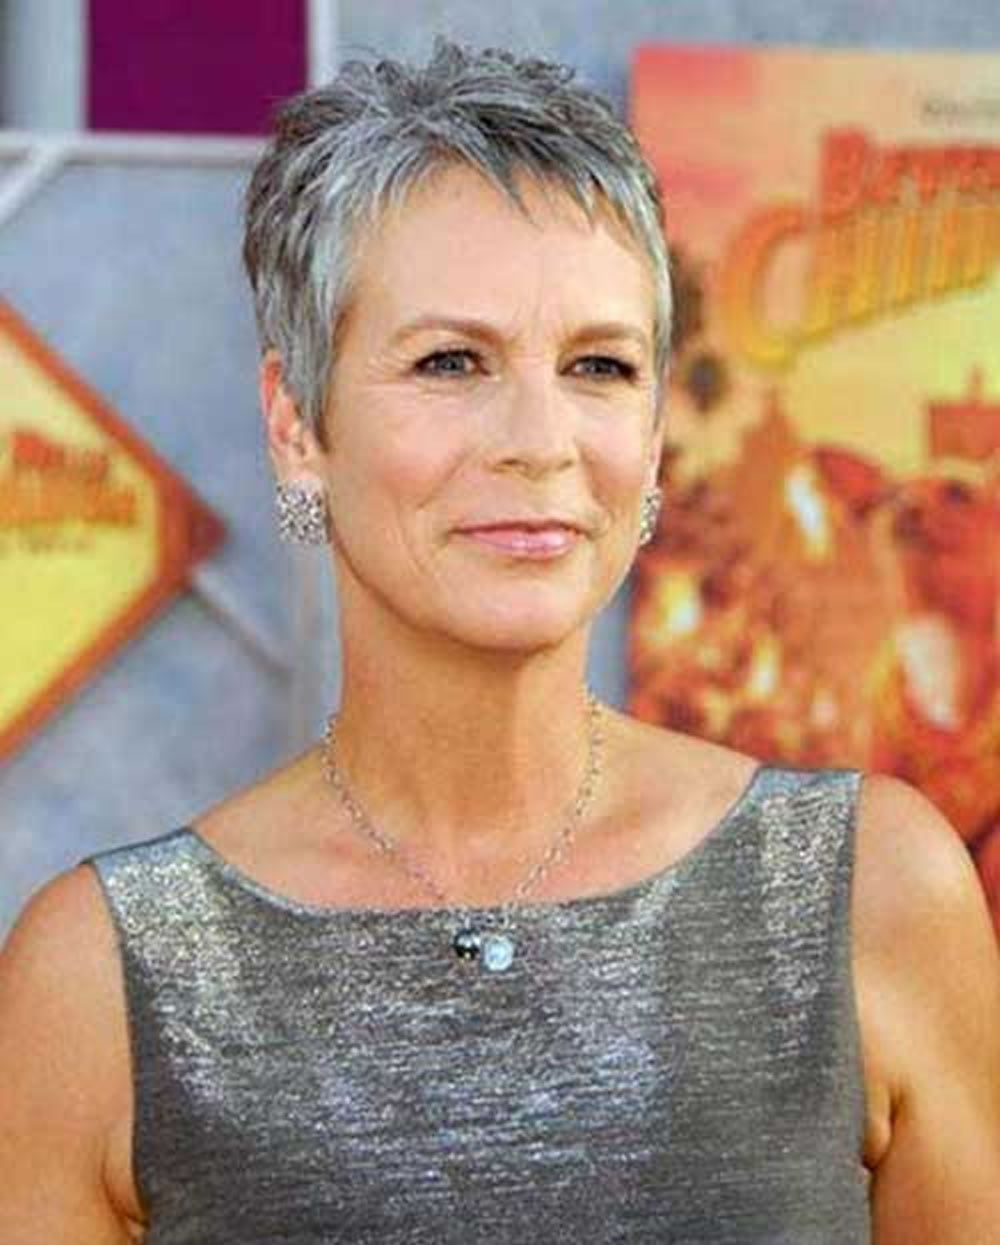 Short Gray Hairstyle Images And Hair Color Ideas For Older